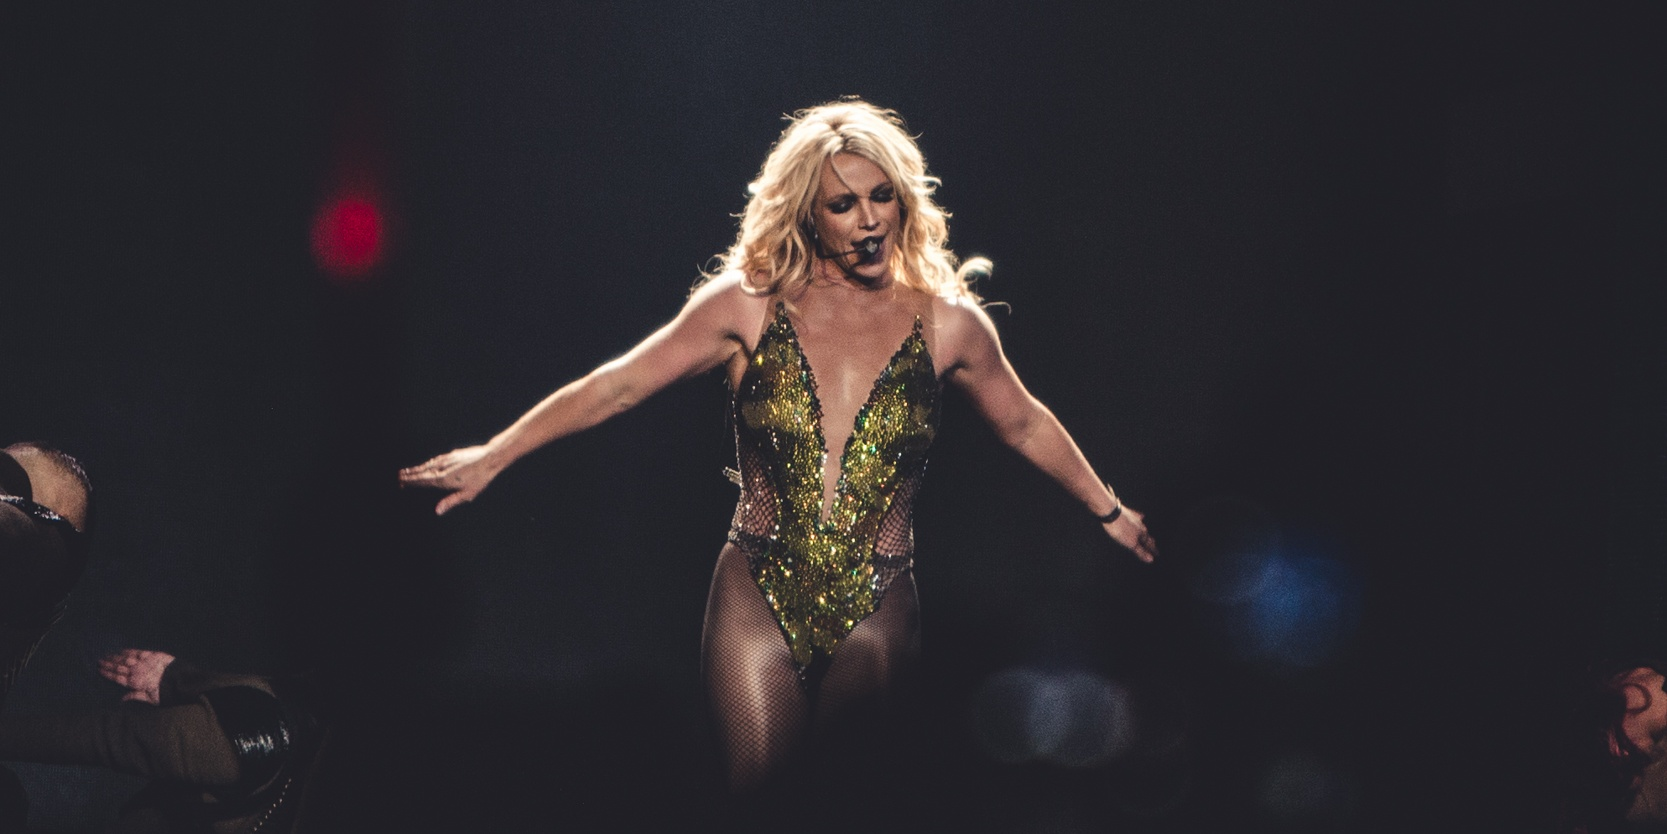 Britney Spears' Singapore show is the most expensive of 2017